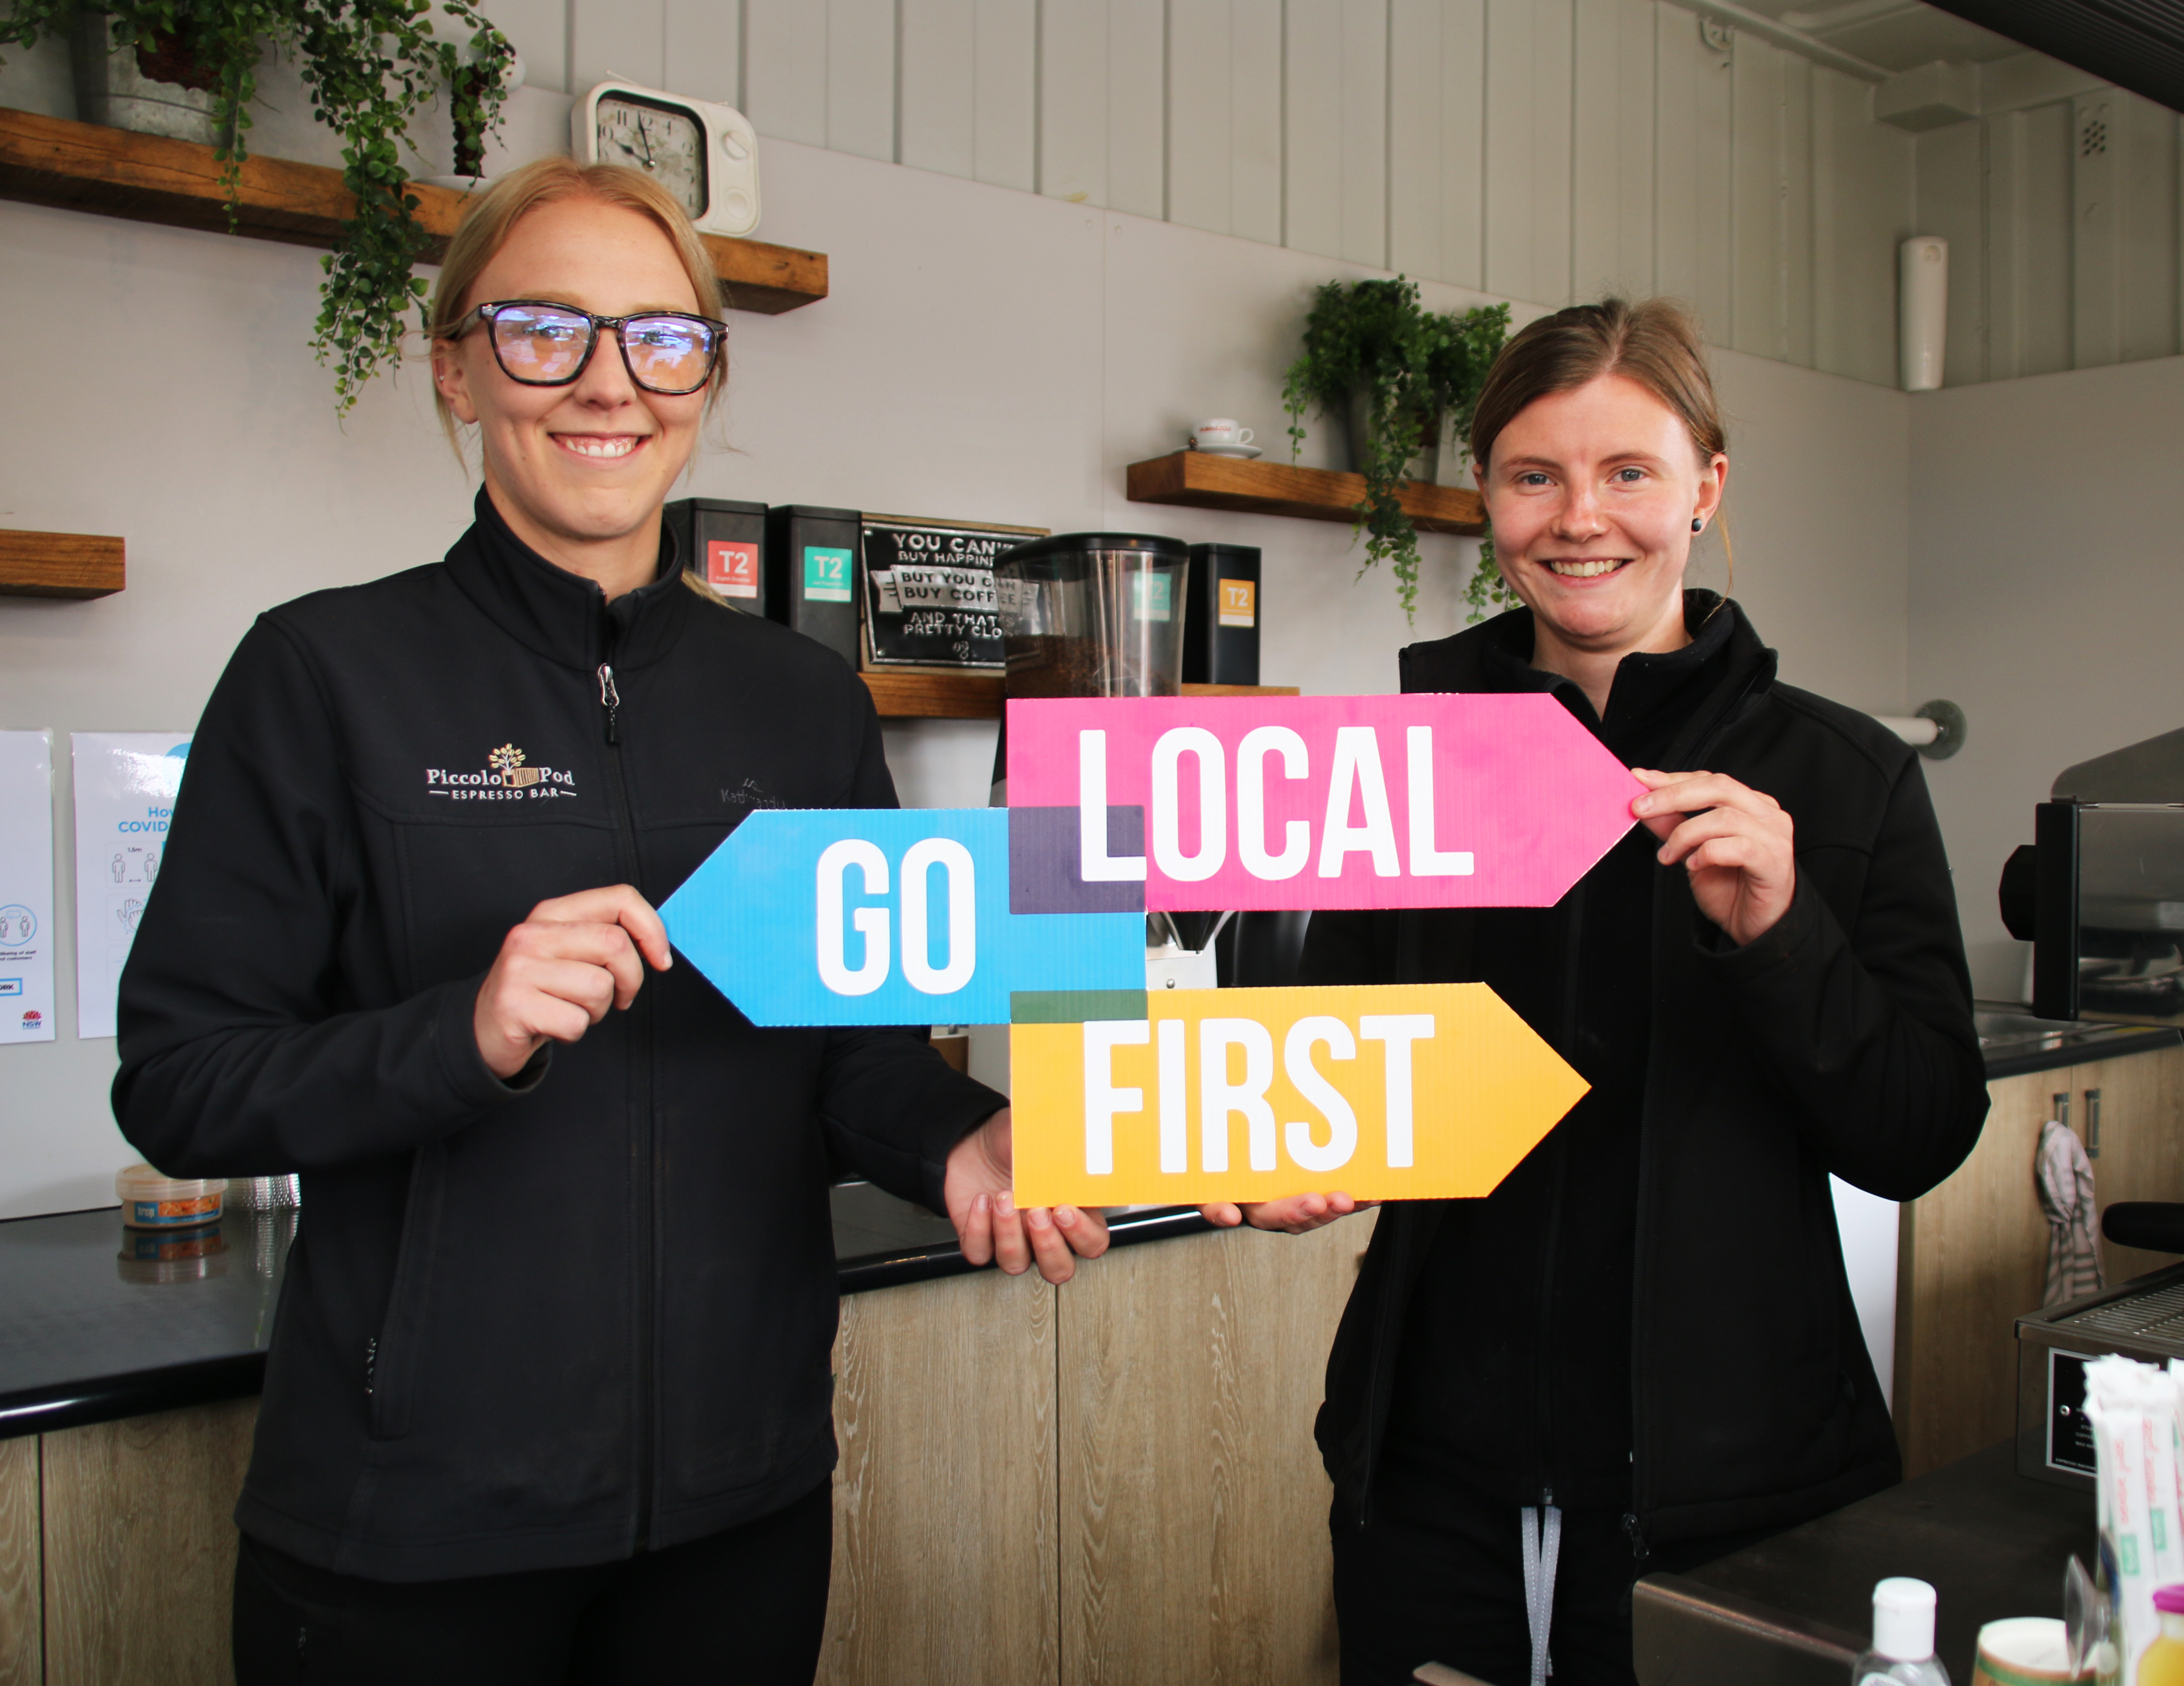 Shoppers urged to support local businesses